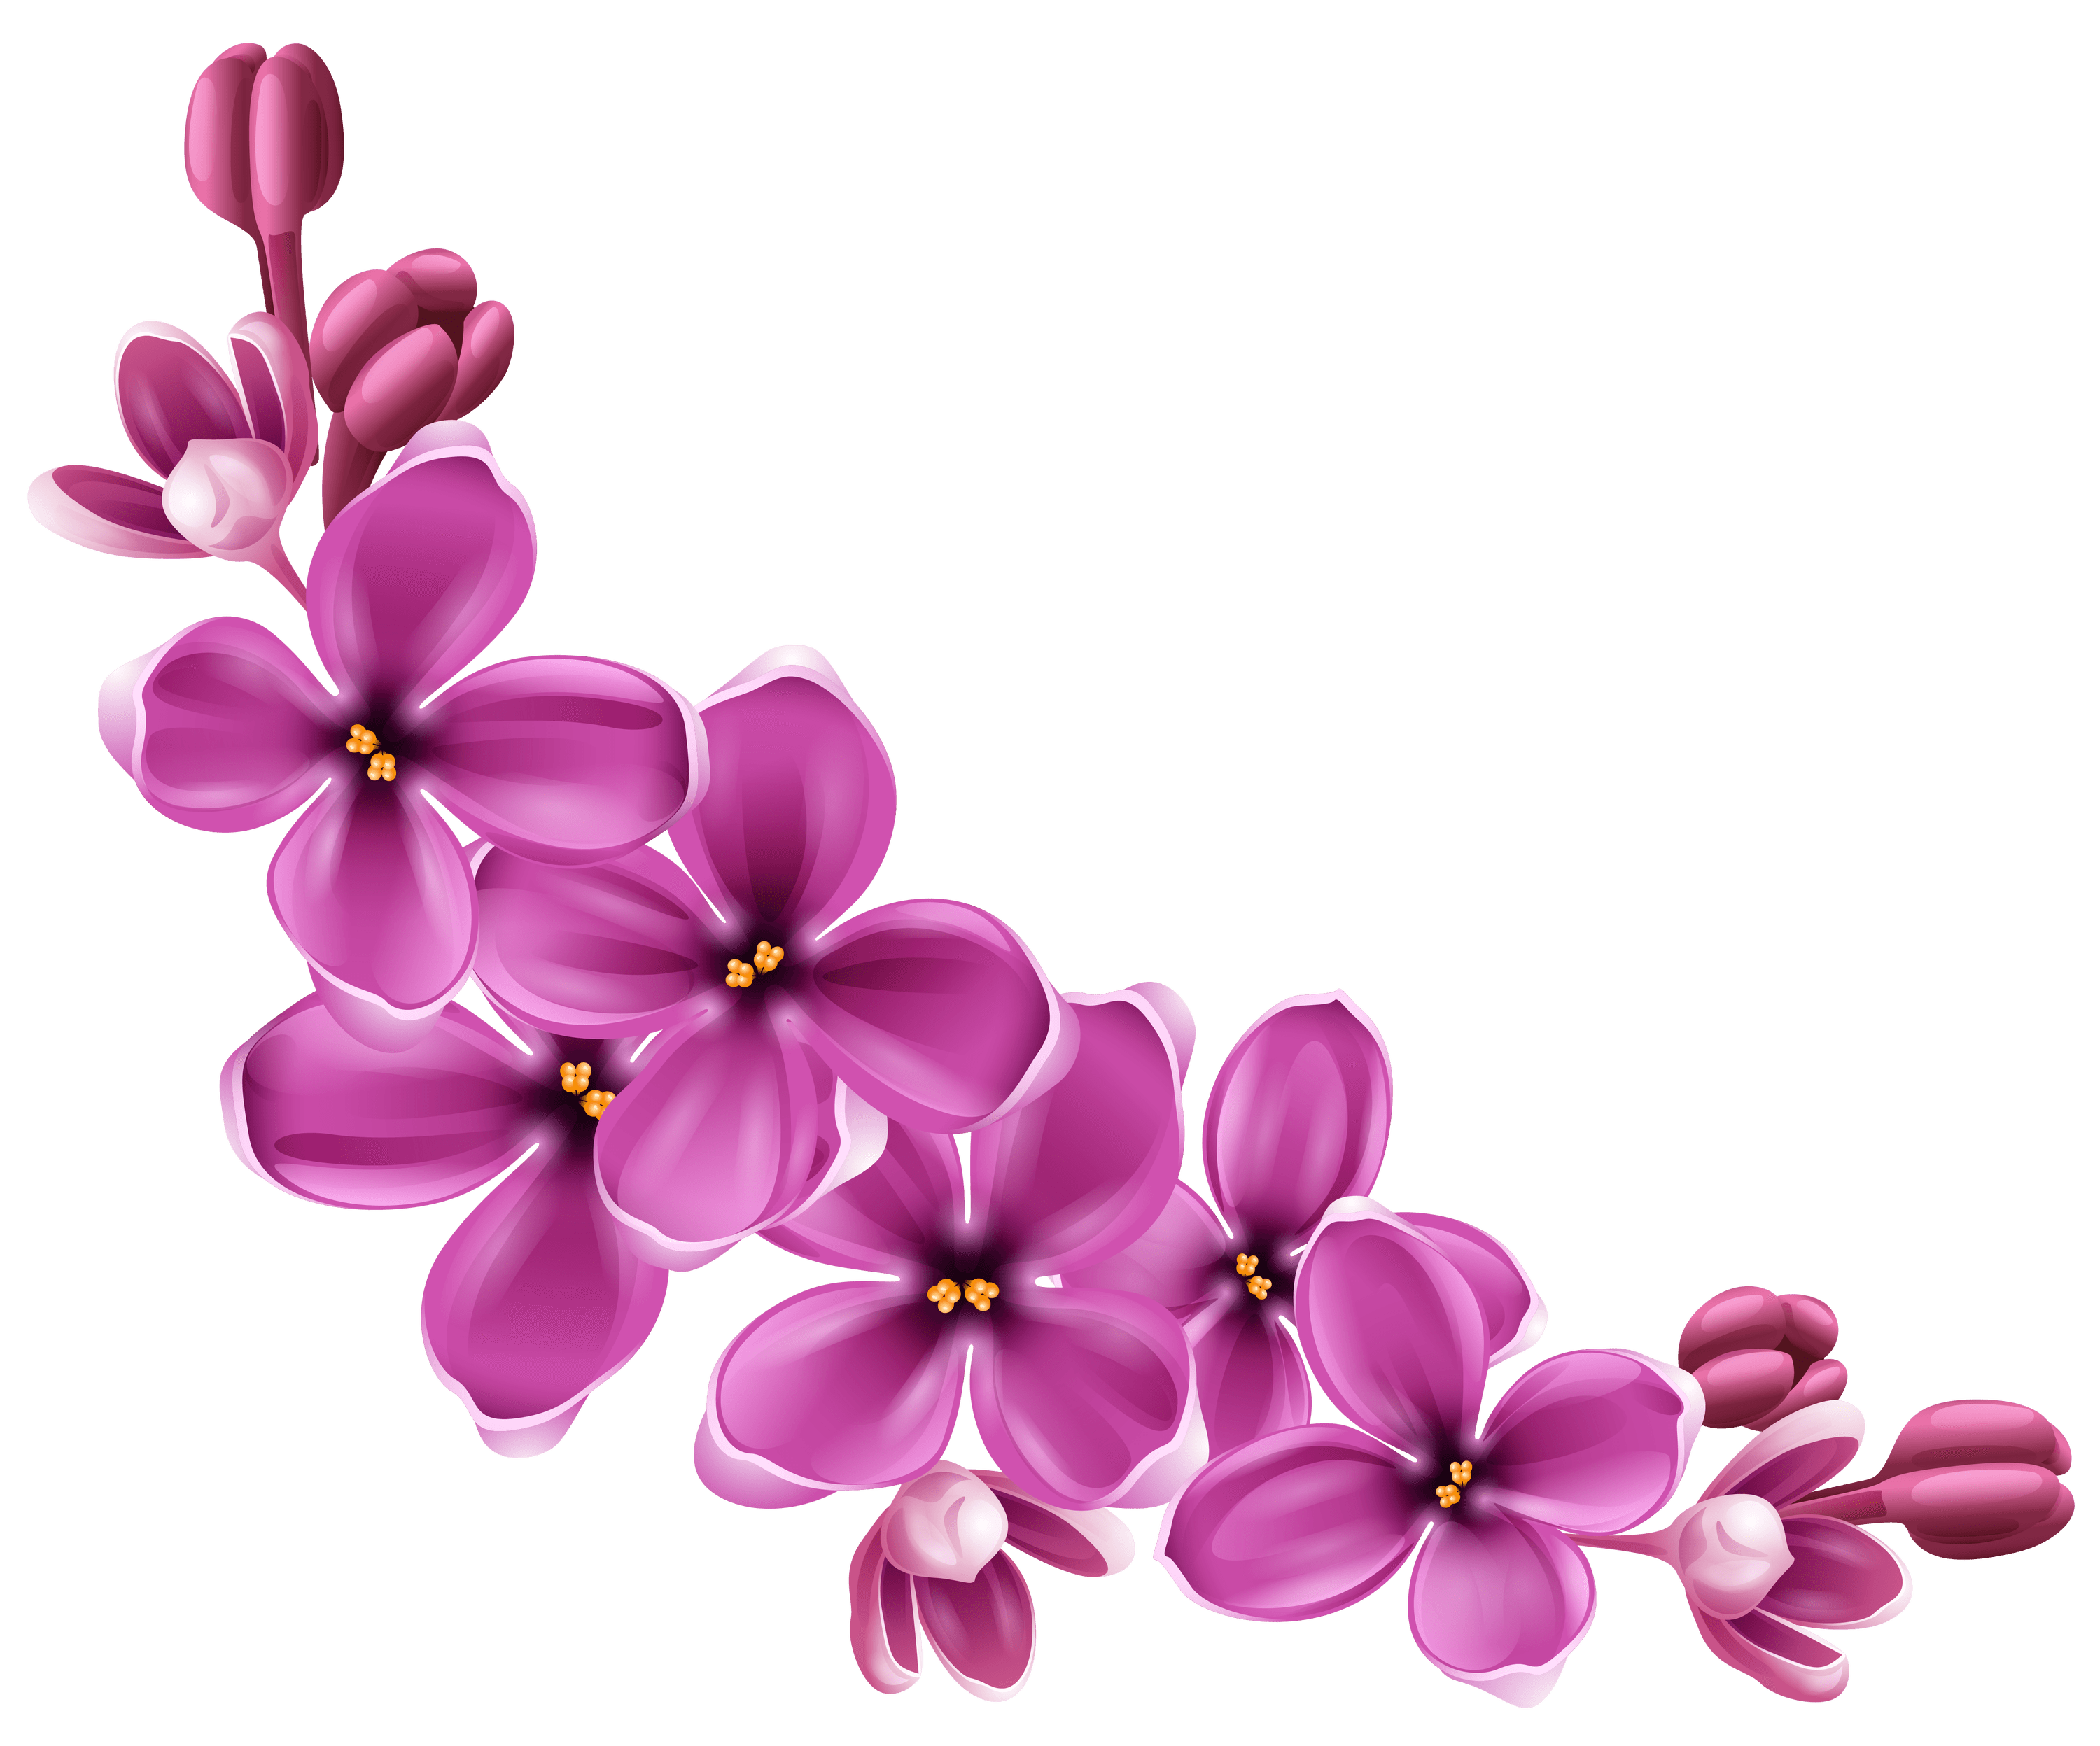 Png Violets Flowers Transparent Violets Flowers Png Images